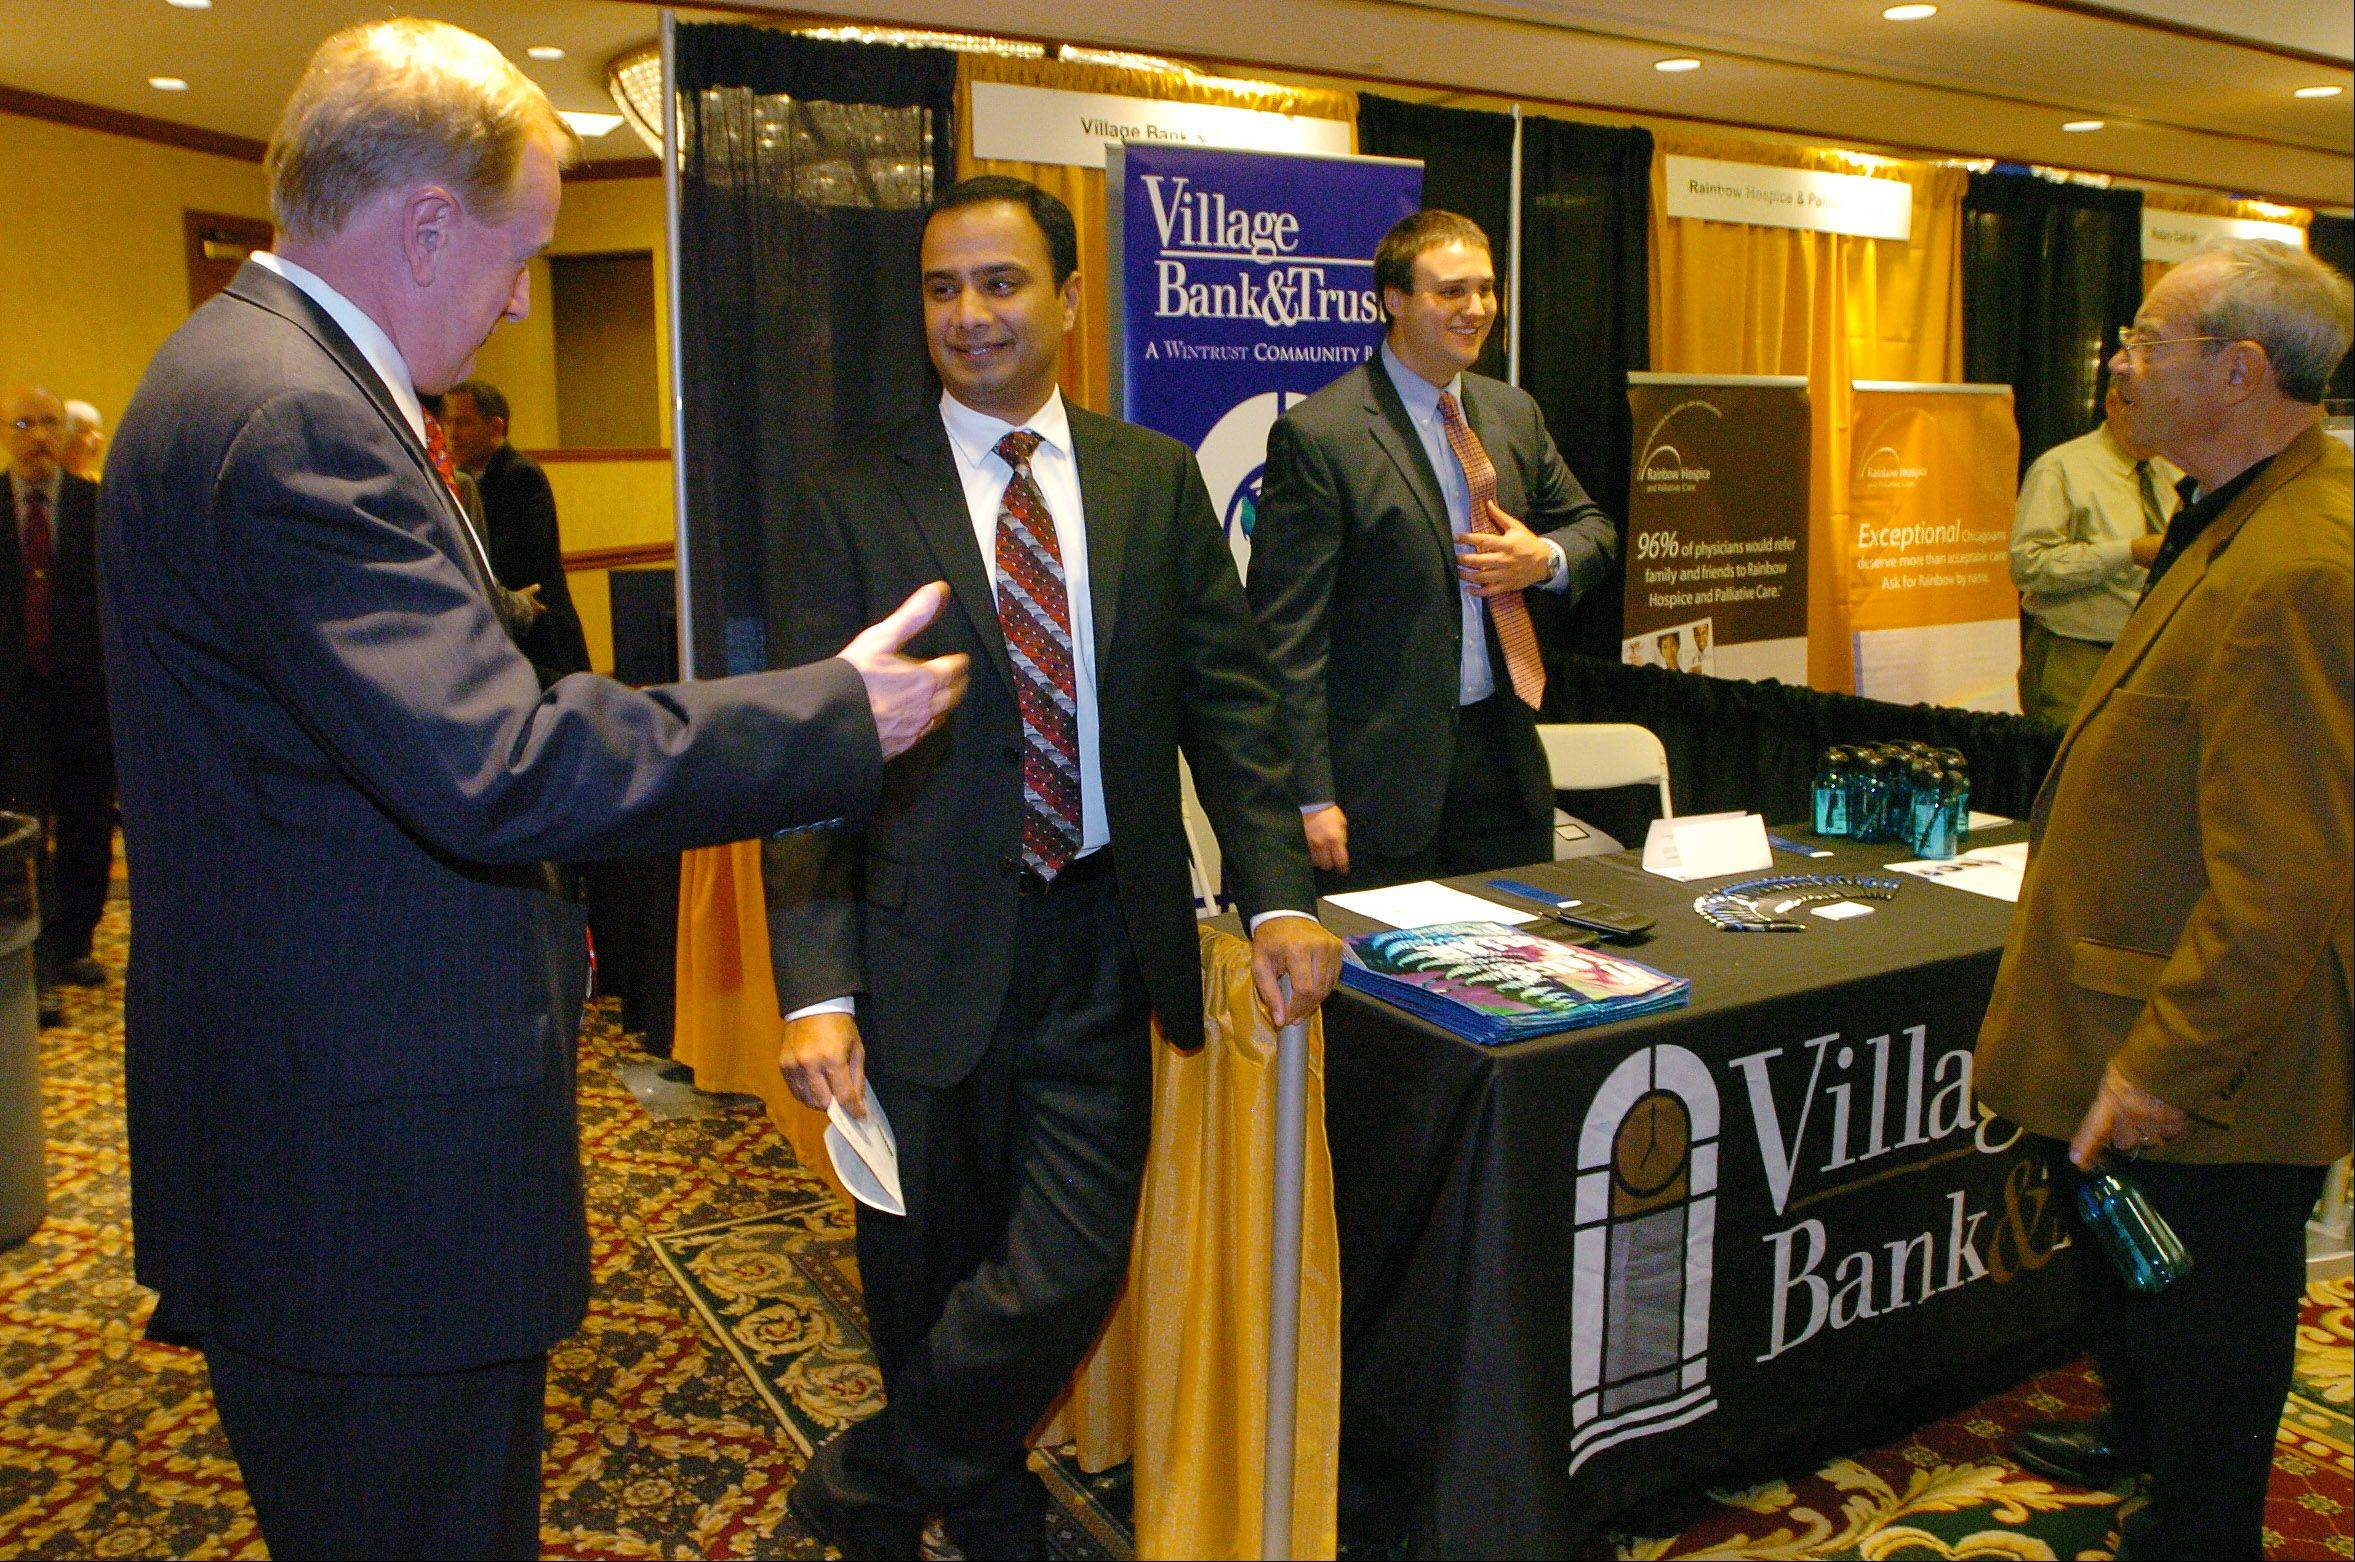 James Gillis and Syed Hussaini of Village Bank & Trust talk business by their booth.